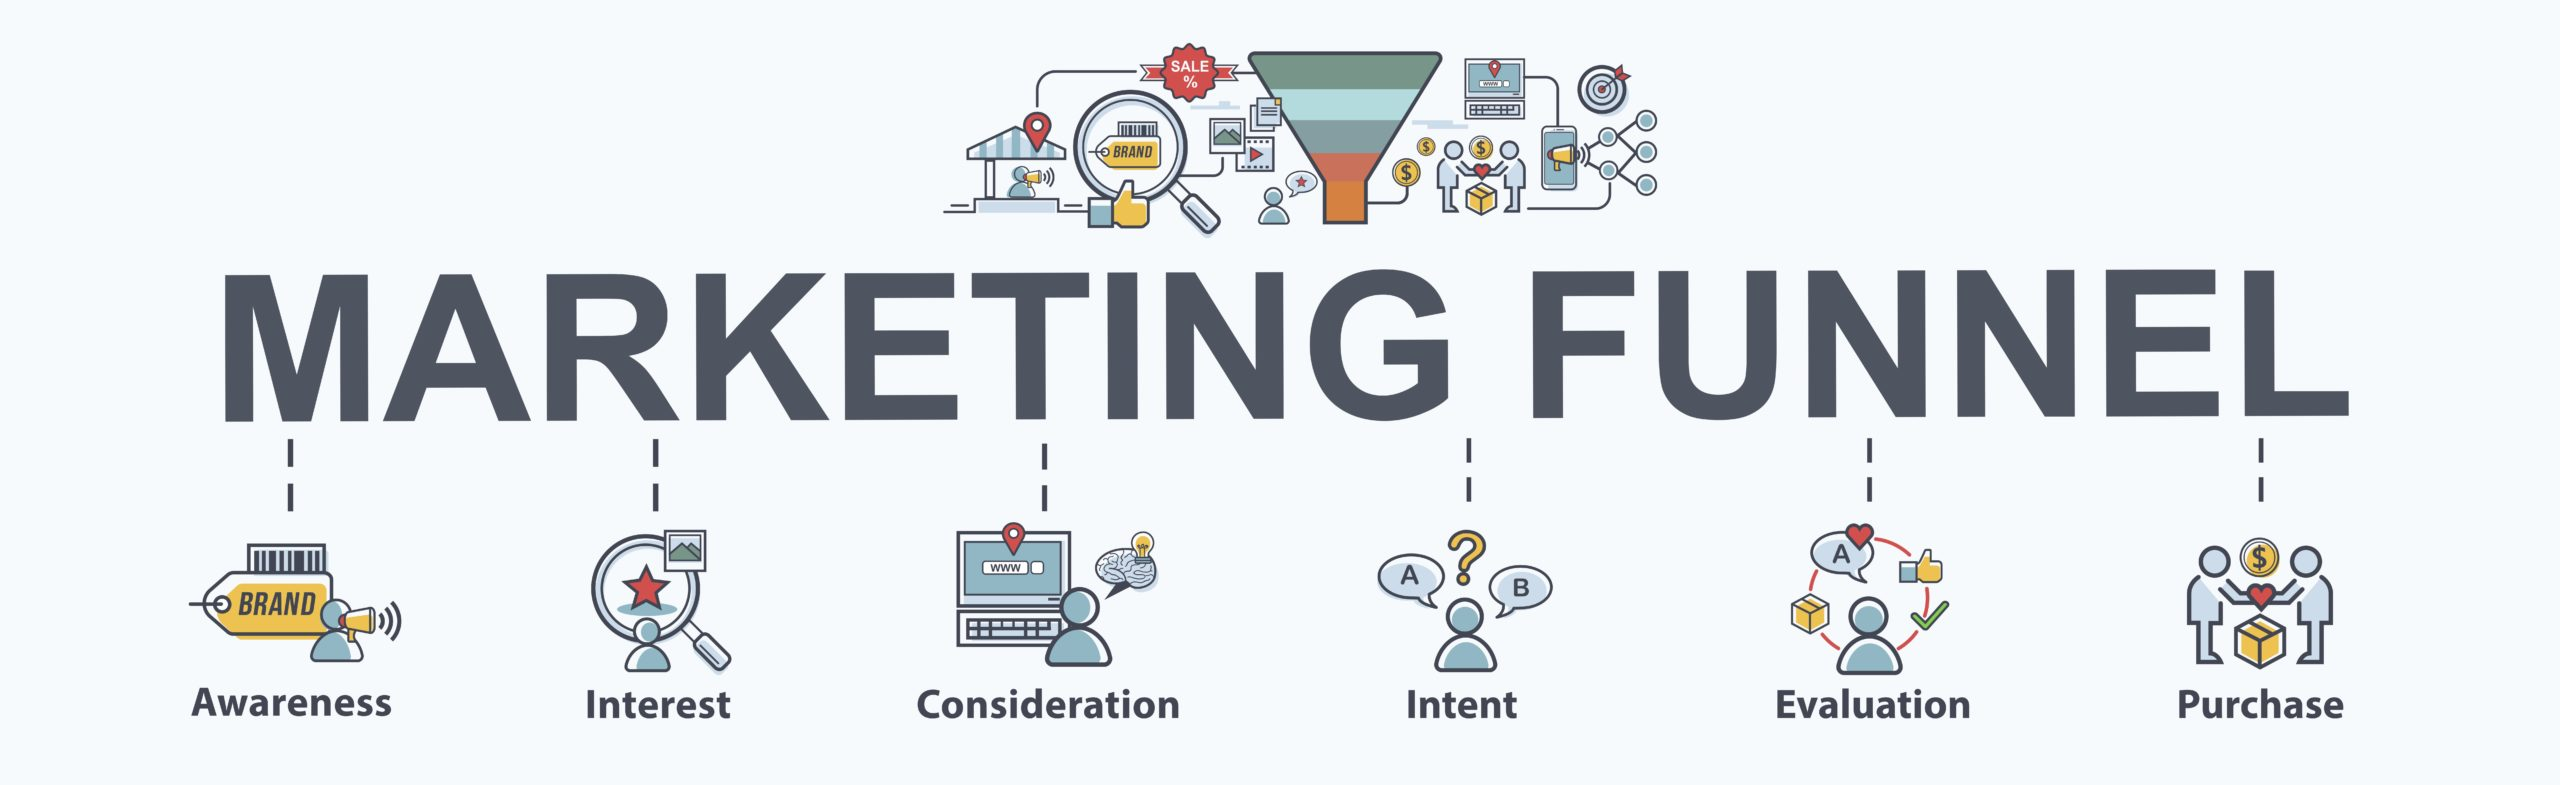 Transactional Email - Marketing Funnel